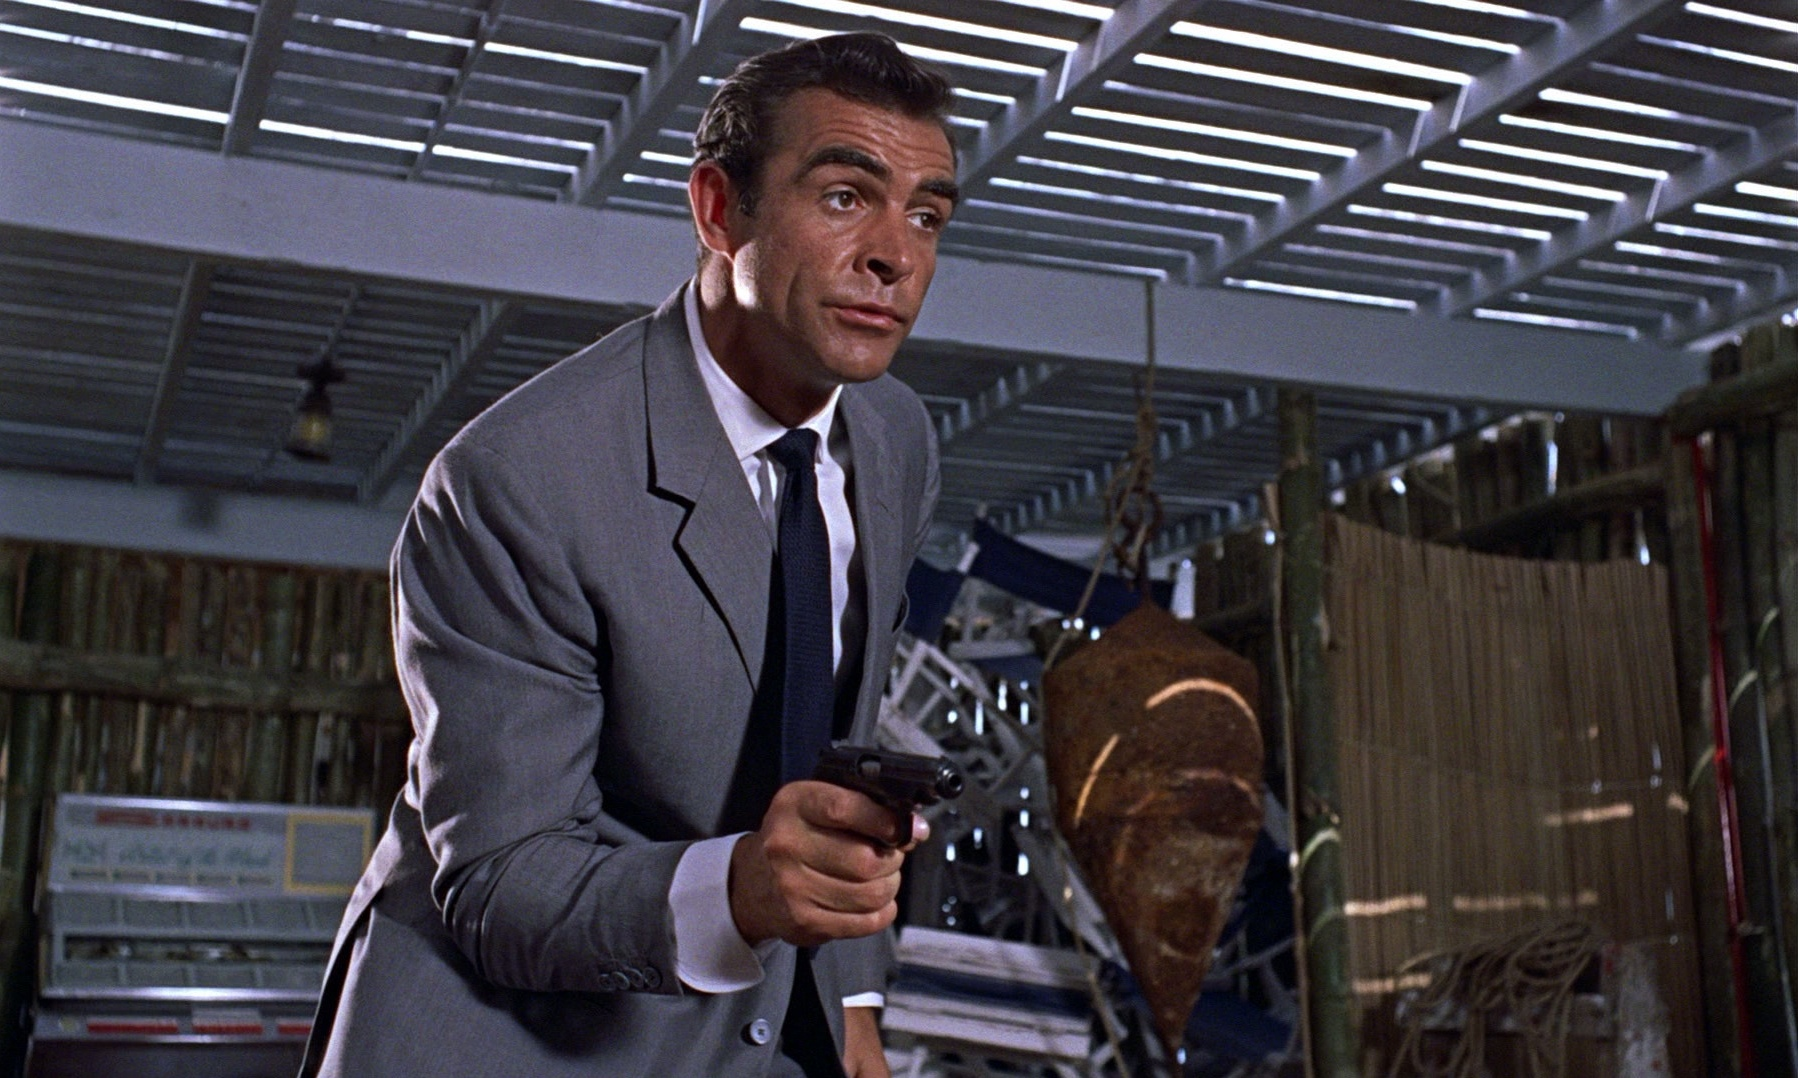 Sean Connery S Suit Submitted For Your Perusal